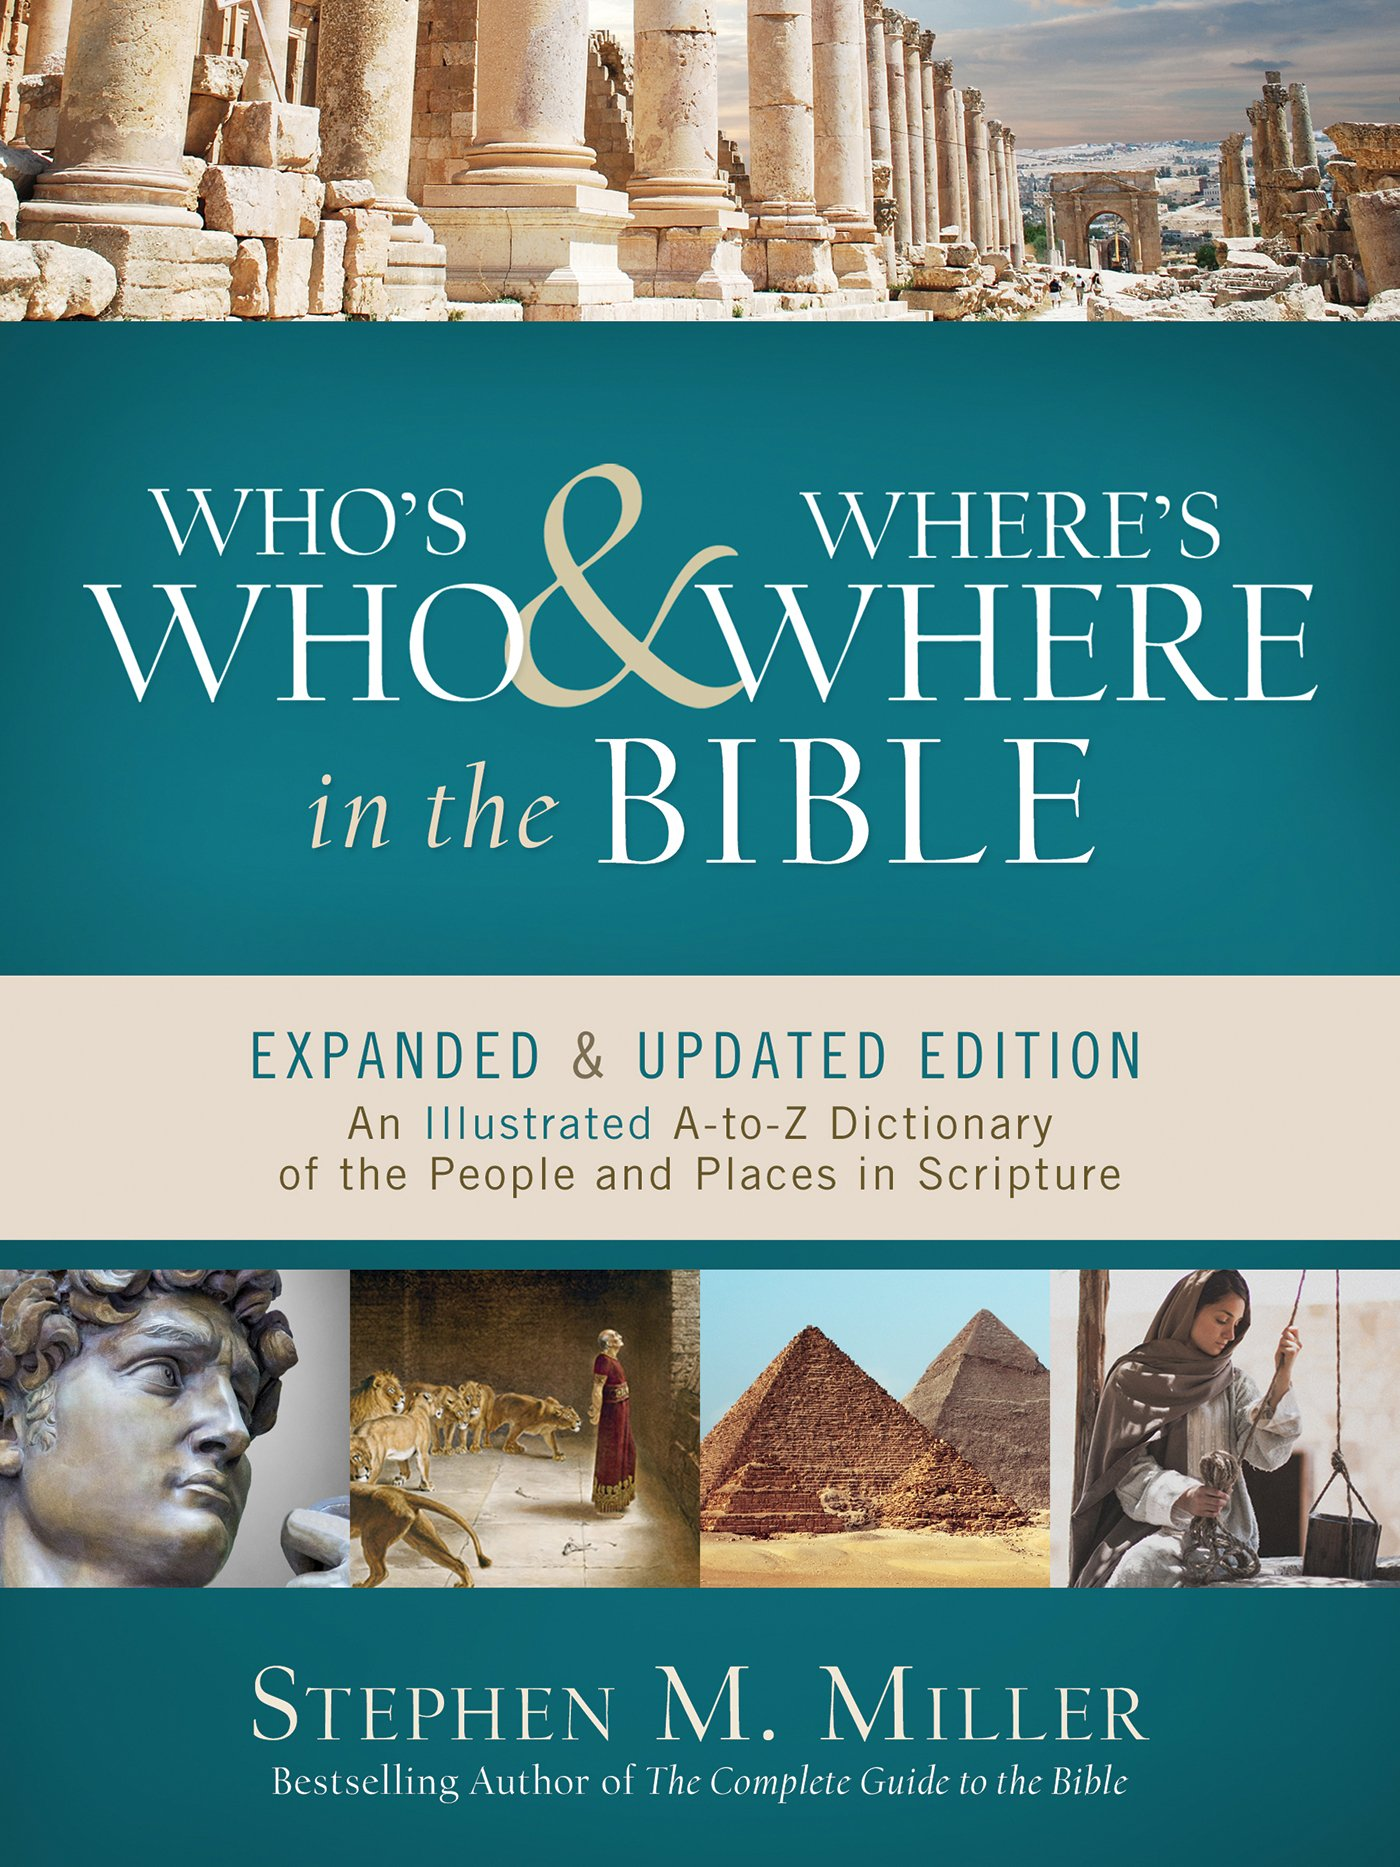 Download Who's Who and Where's Where in the Bible: An Illustrated A-to-Z Dictionary of the People and Places in Scripture pdf